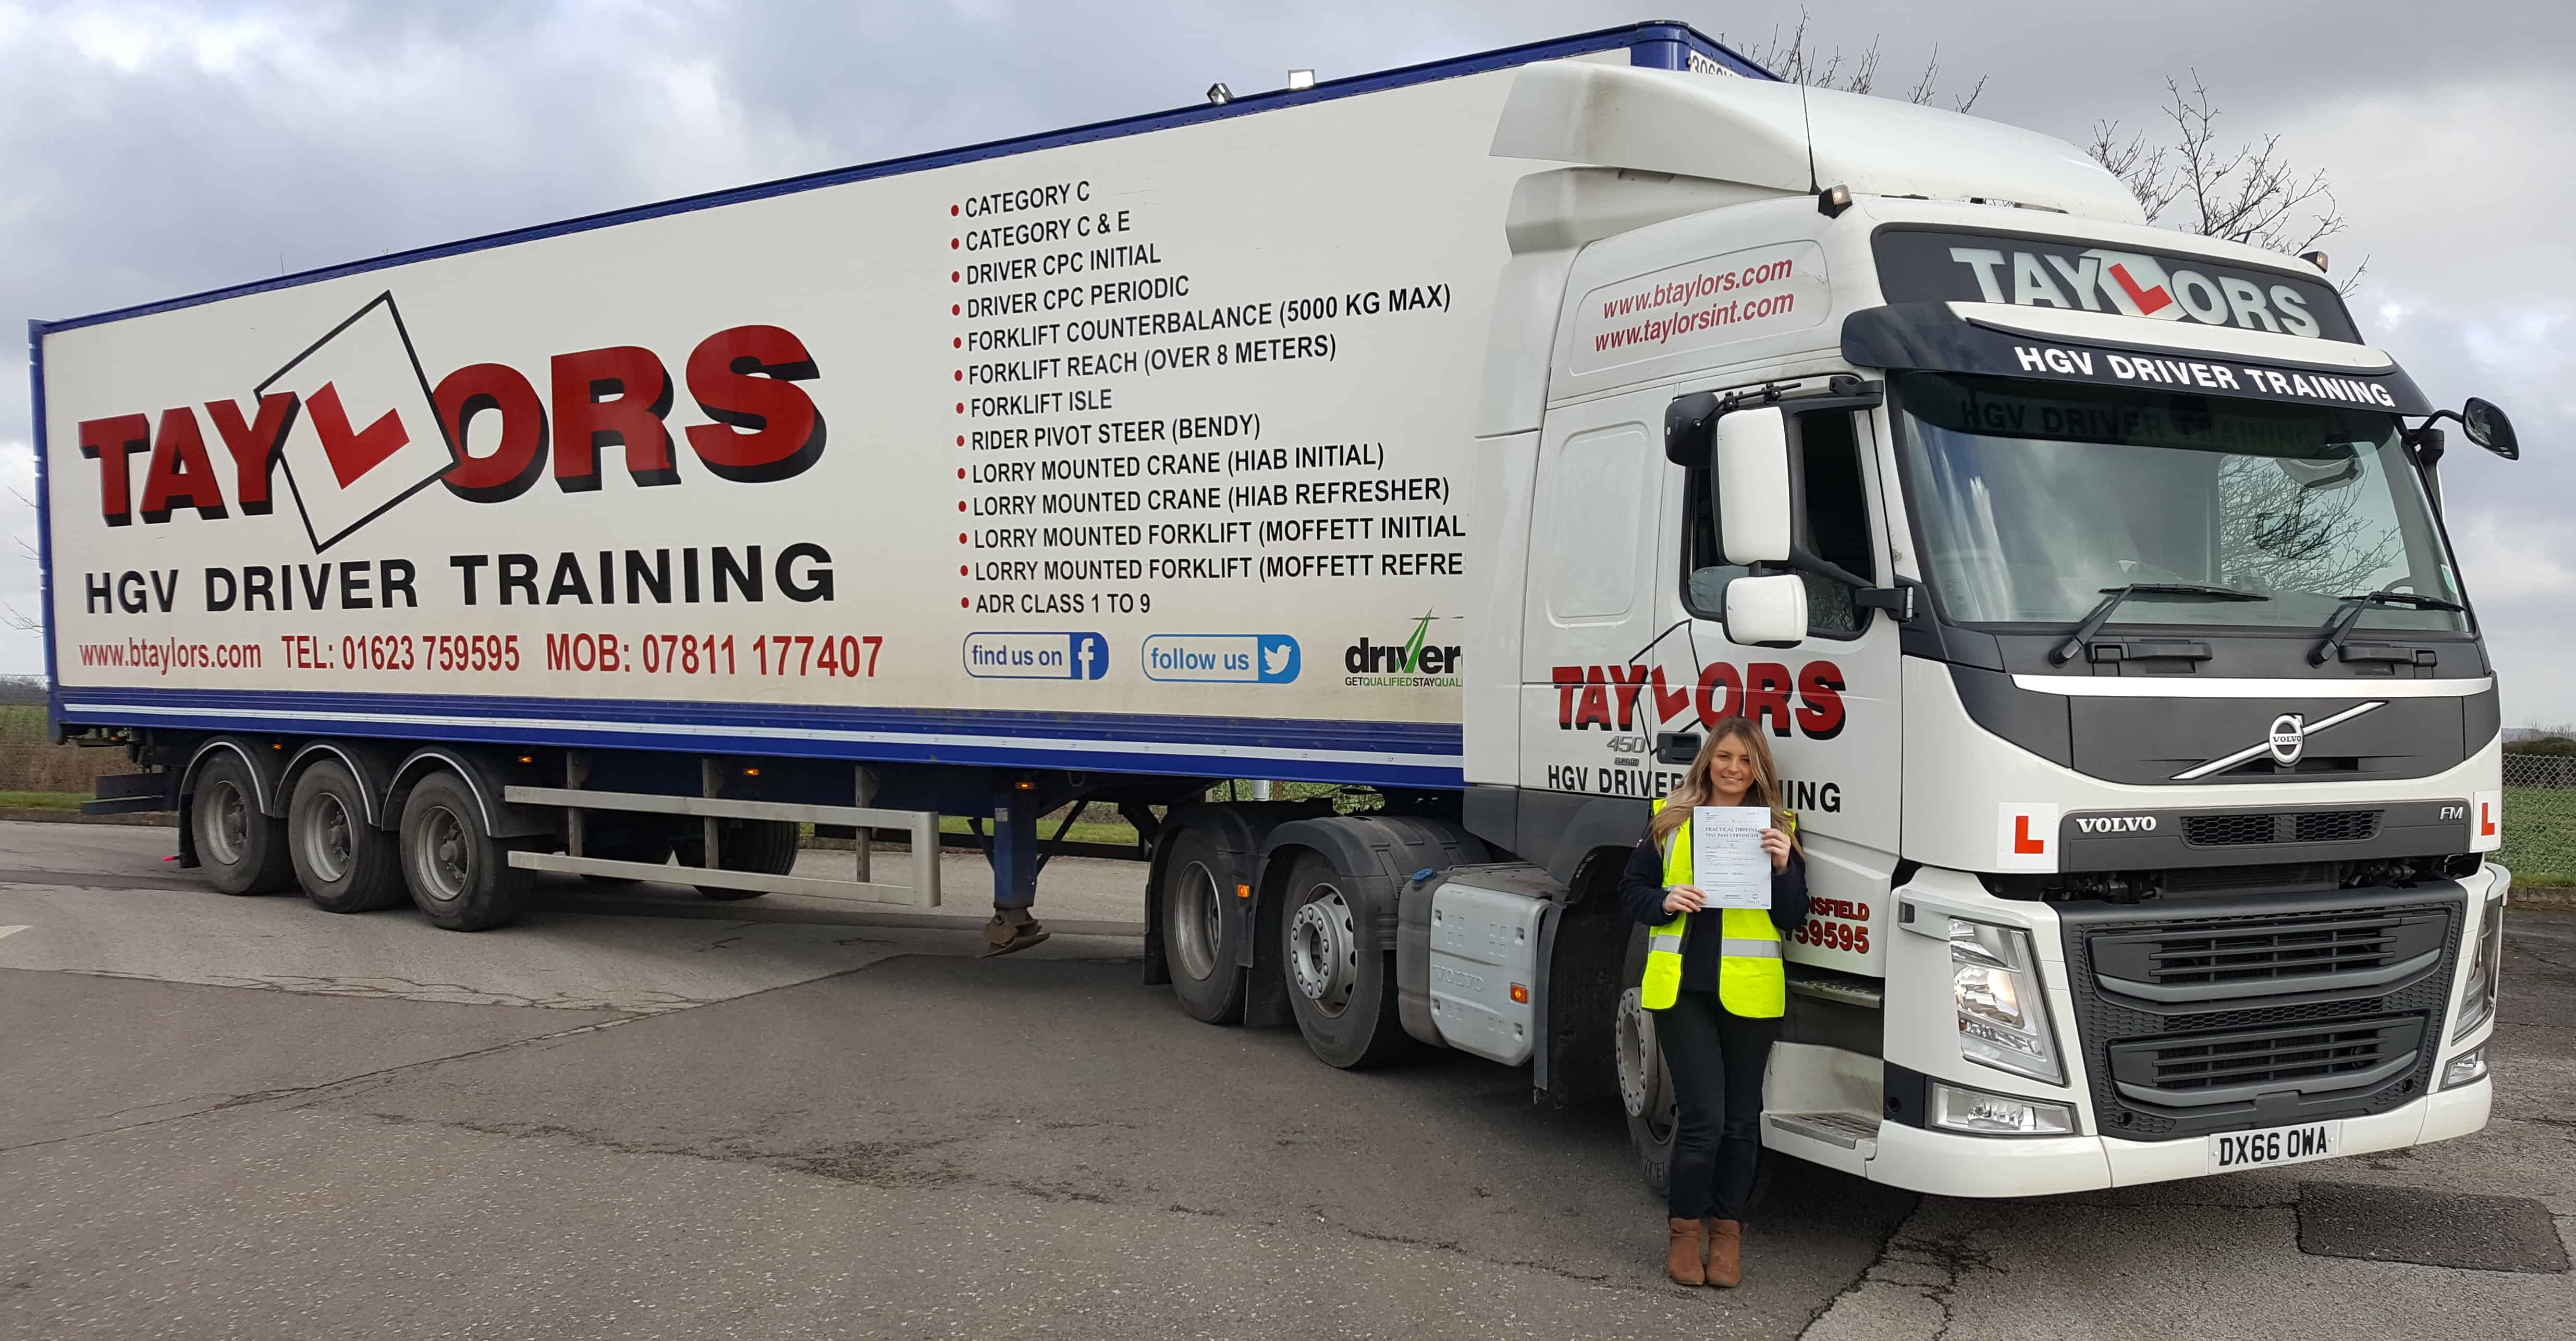 REBECCA TAYLOR PASSES HER CATEGORY C E DRIVING TEST Taylors